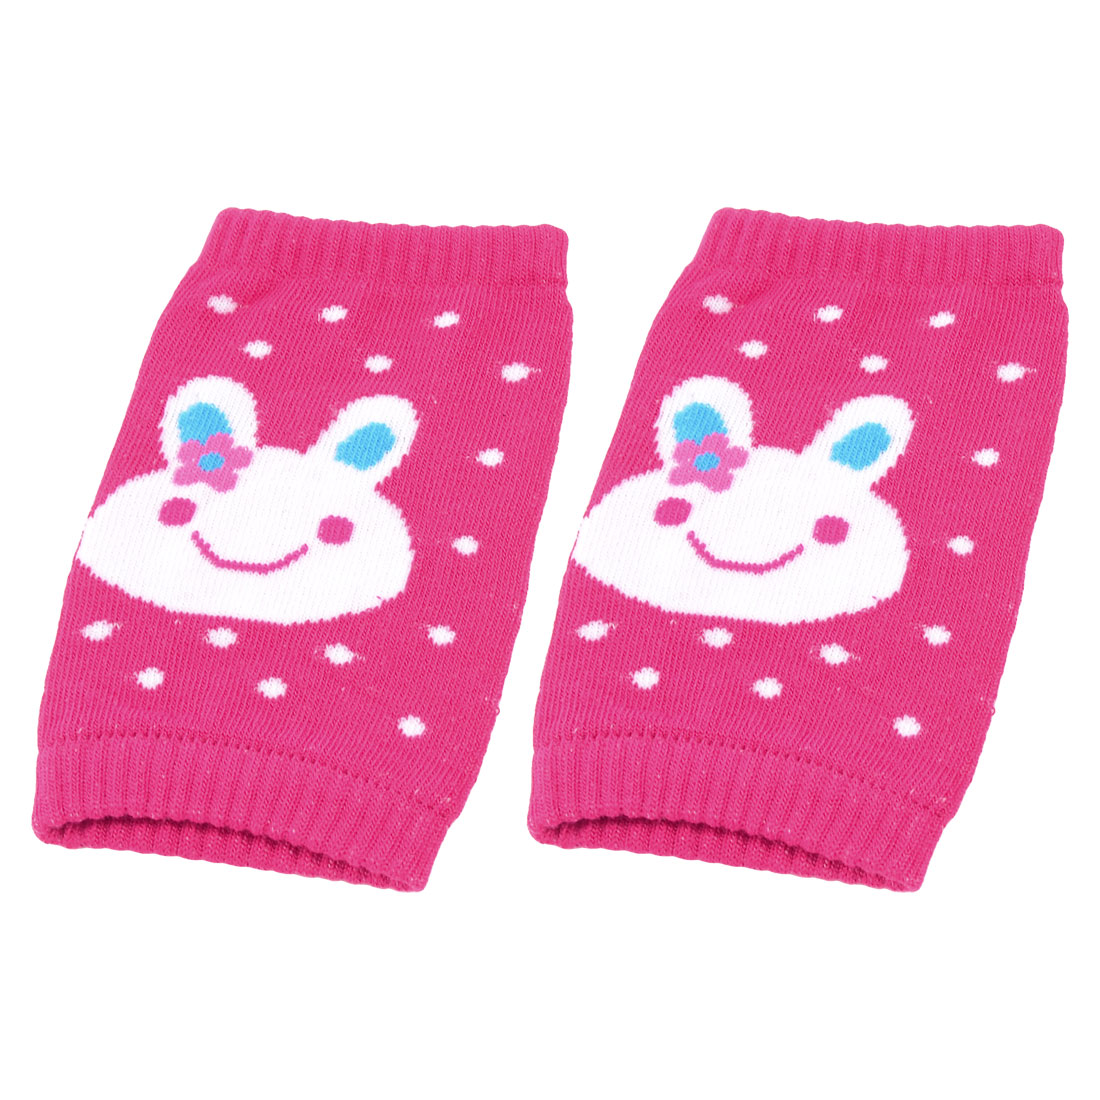 Pair Acrylic Cartoon Rabbit Printed Baby Toddler Stretchy Knee Support Fuchsia White